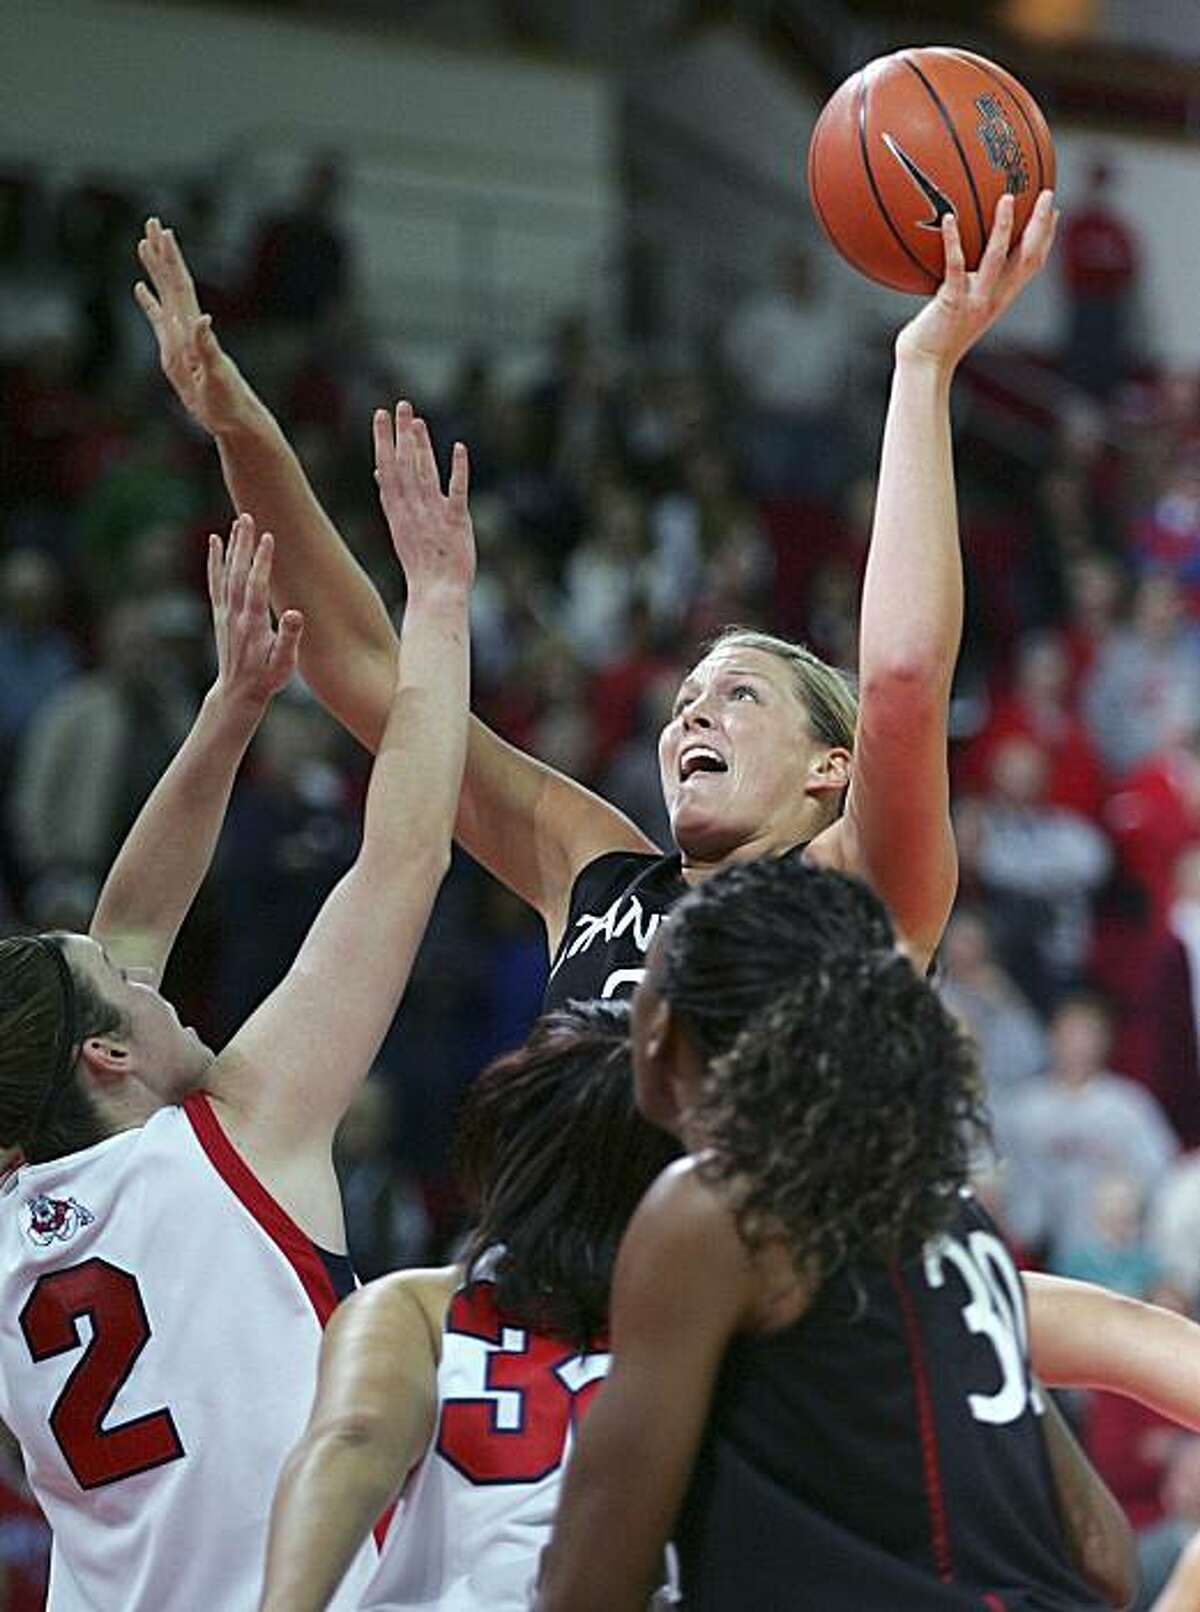 Stanford's Jayne Appel puts up a shot against Fresno State's Hayley Munro during the first half of an NCAA college basketball game Wednesday, Dec. 30, 2009, in Fresno, Calif. (AP Photo/Gary Kazanjian)